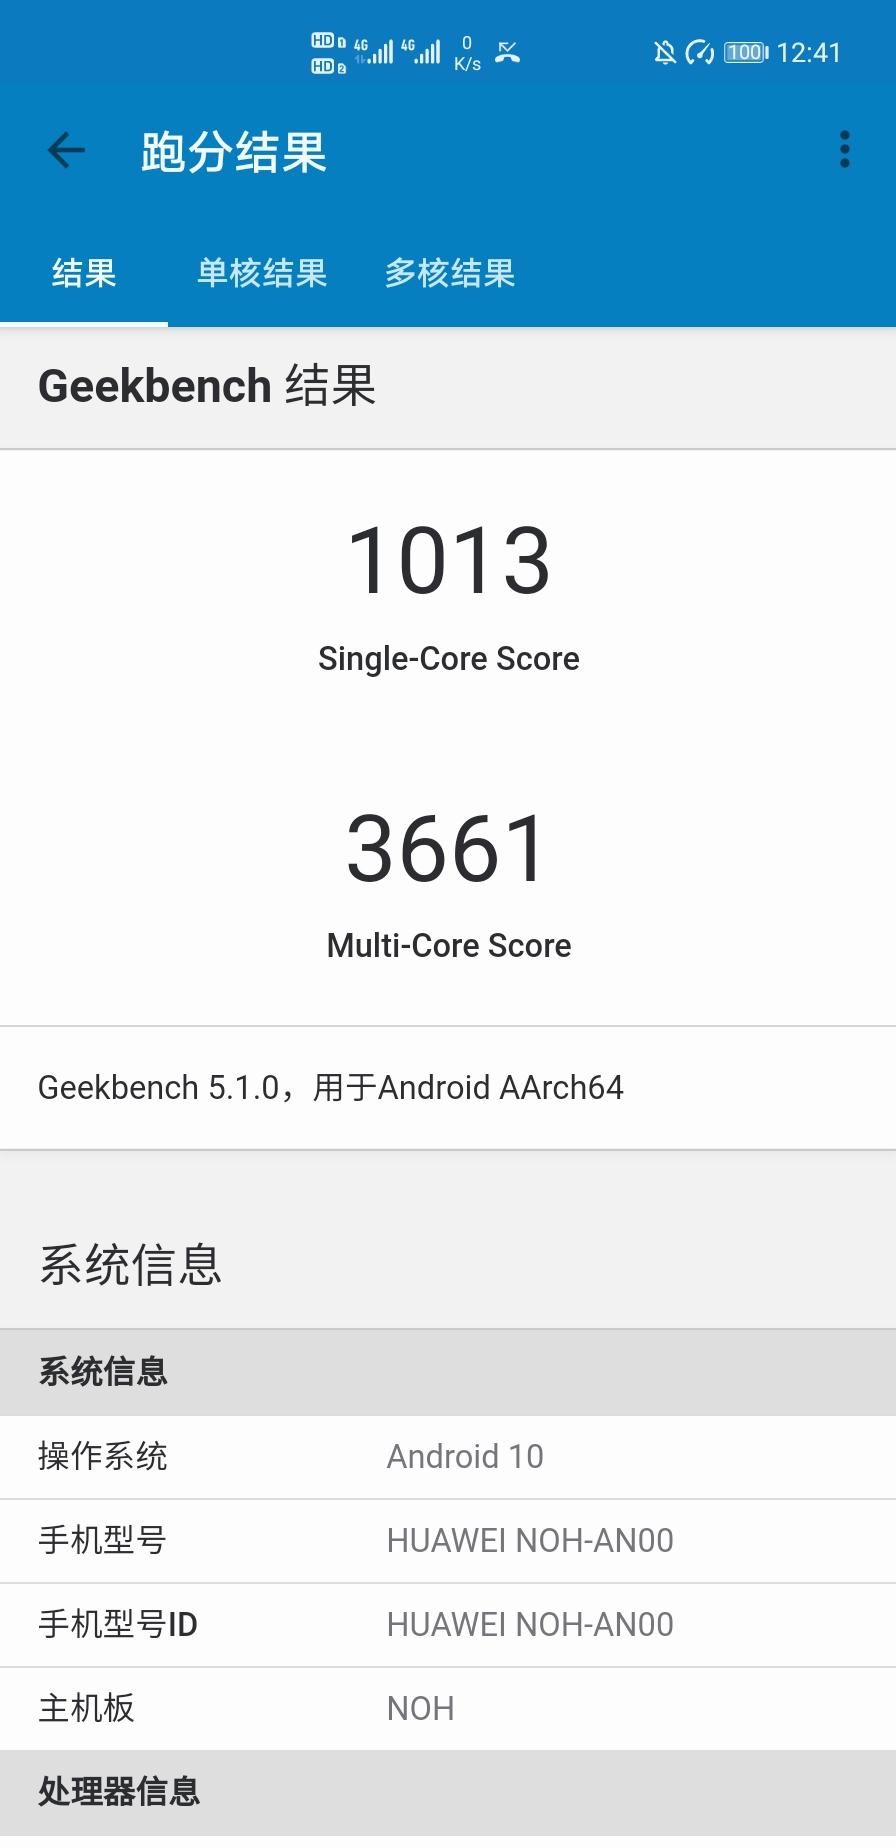 Screenshot_20201119_124139_com.primatelabs.geekbench5c.jpg